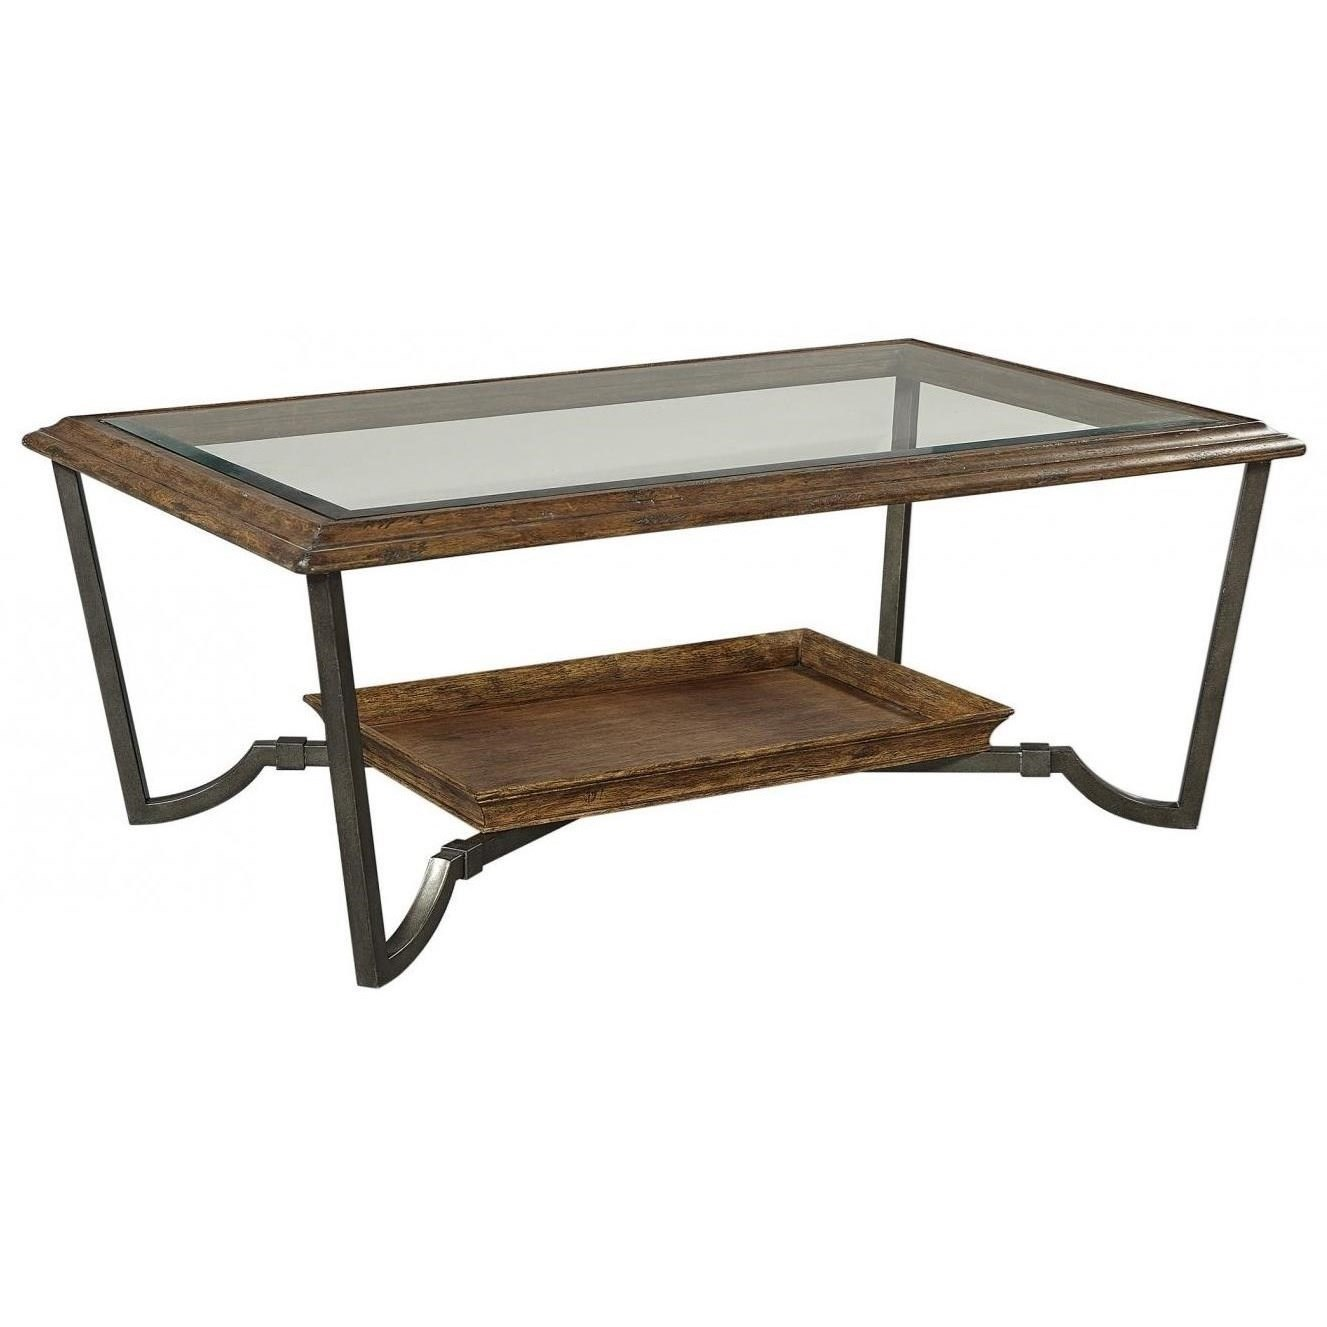 Mosaic Cocktail Table with Glass Top by Aspenhome at Walker's Furniture